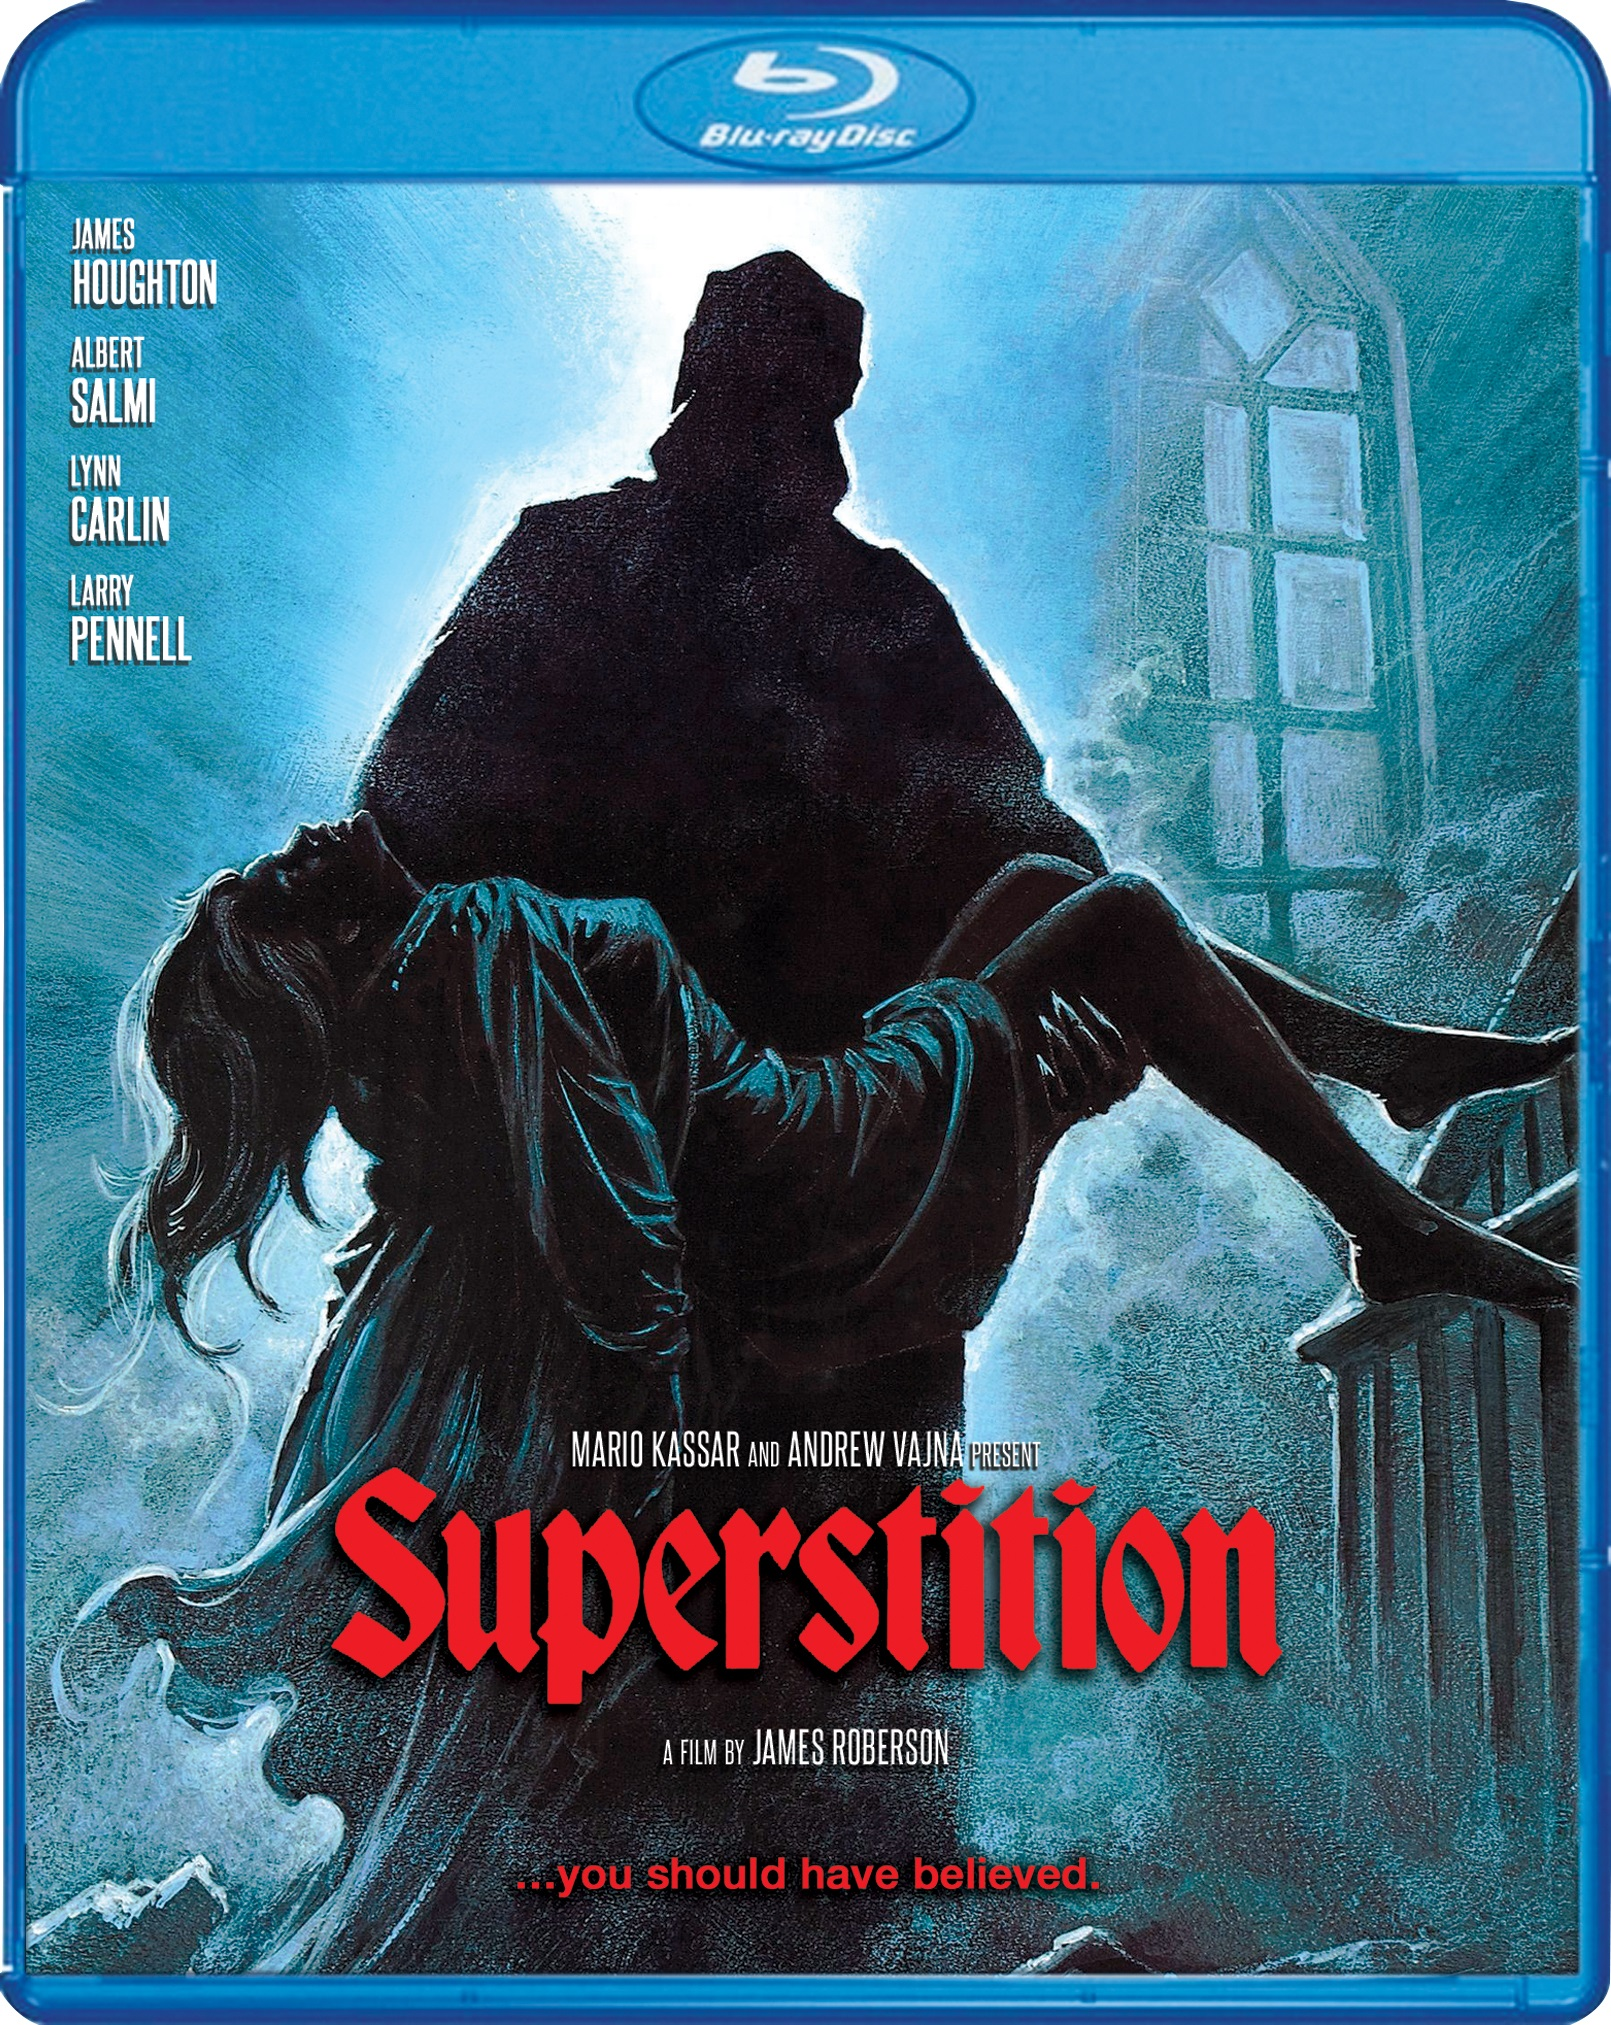 Superstition Blu-ray Review (Scream Factory)